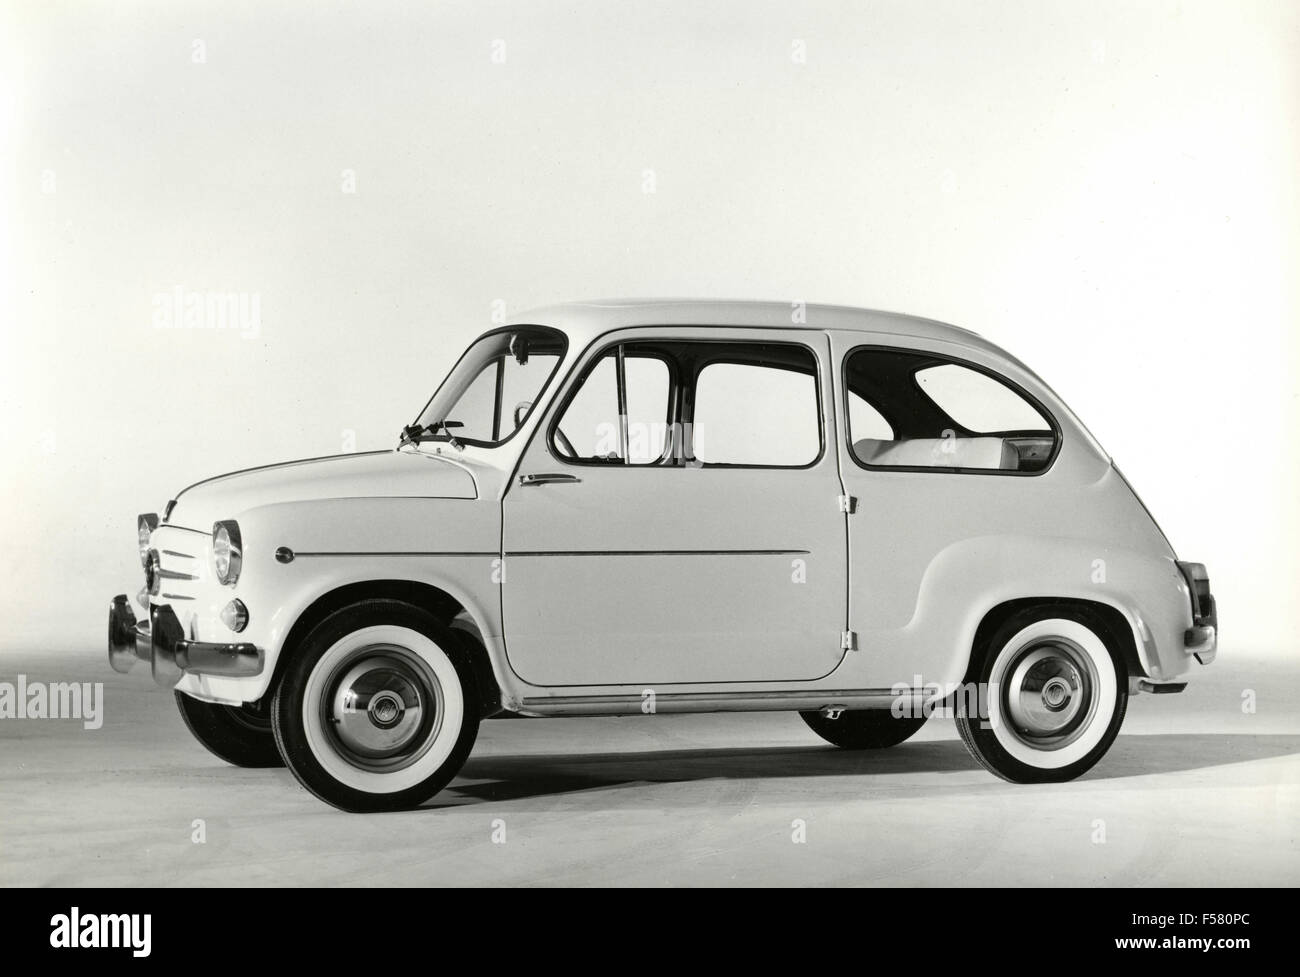 The car FIAT 600 D, Italy - Stock Image